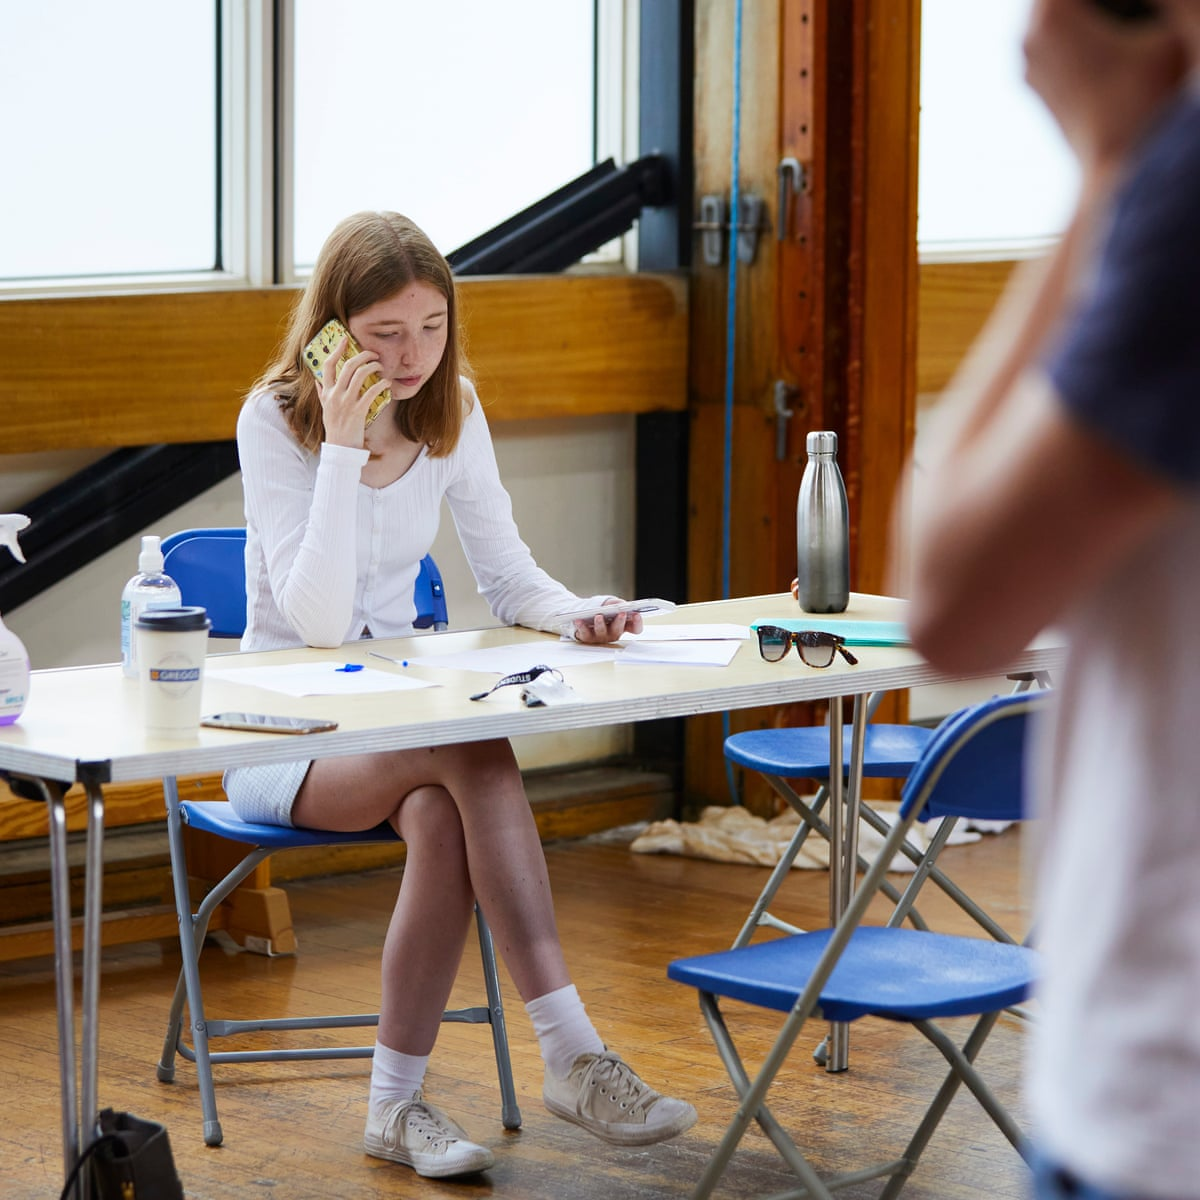 I Feel Cheated Rotherham Students Struggle To Make Sense Of Exam Grades A Levels The Guardian